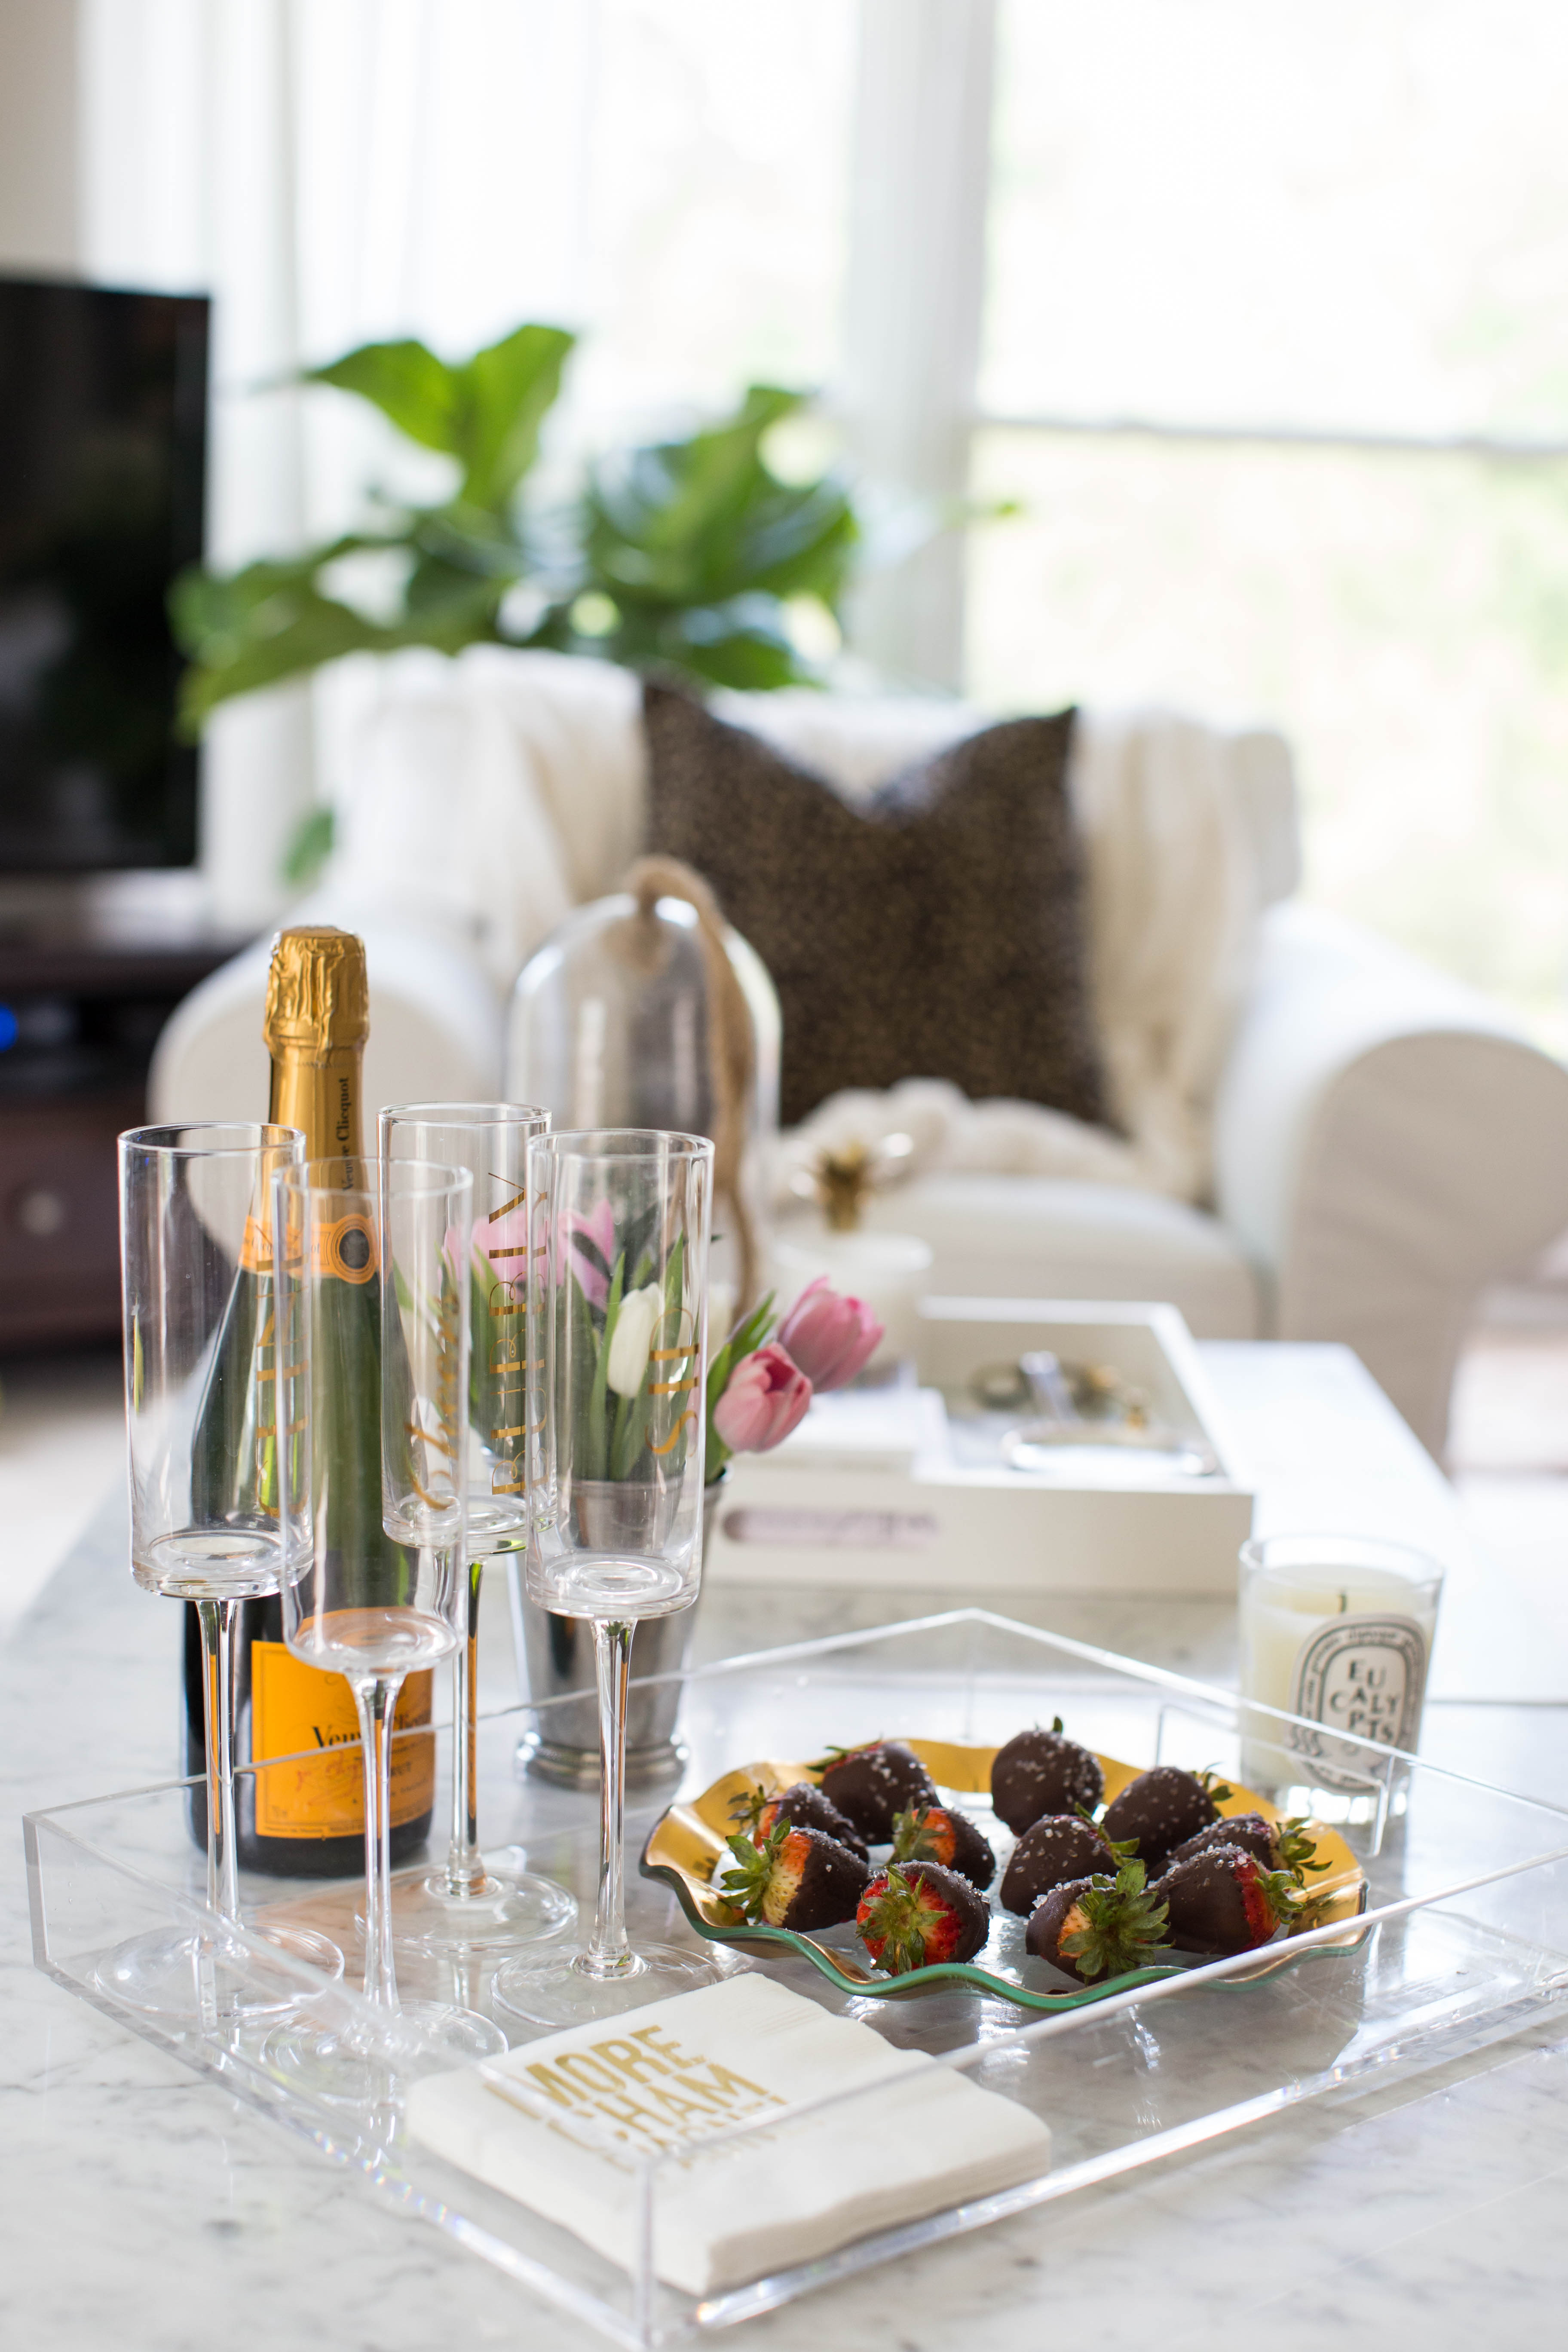 Decadent Champagne Soaked Salted Chocolate Strawberries by NC lifestyle blogger Amy of Coffee Beans and Bobby Pins